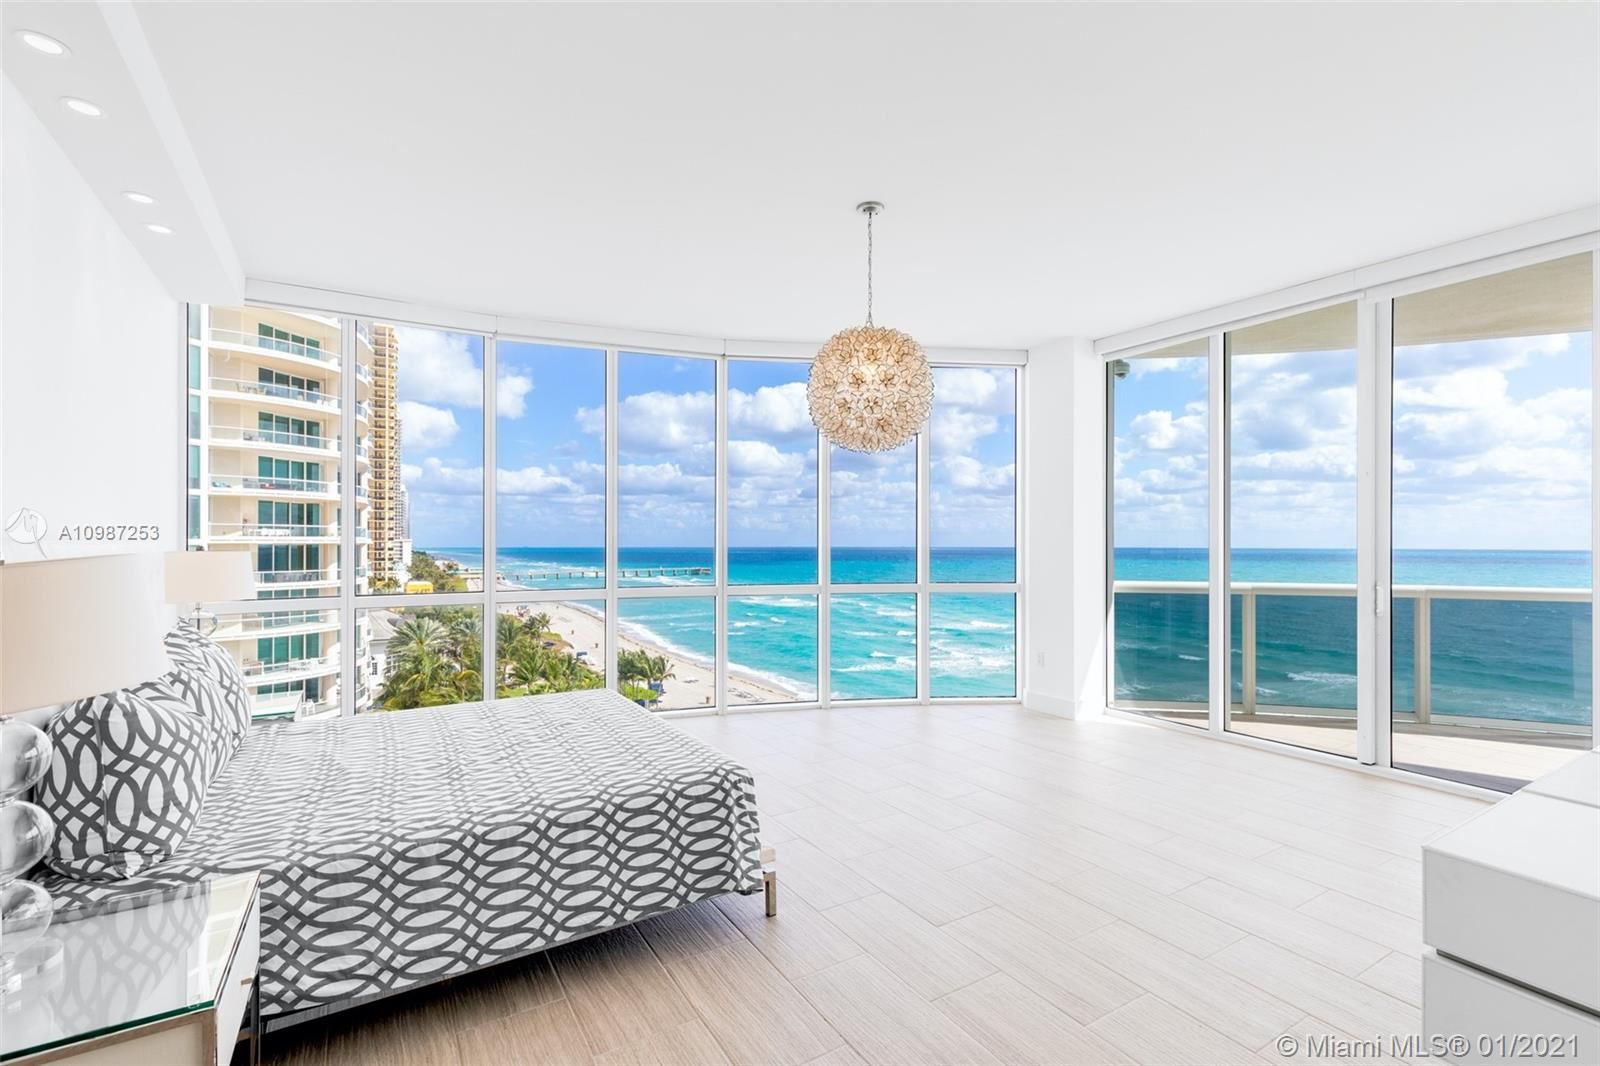 16001 Collins Ave #701, Sunny Isles, FL 33160 - #: A10987253